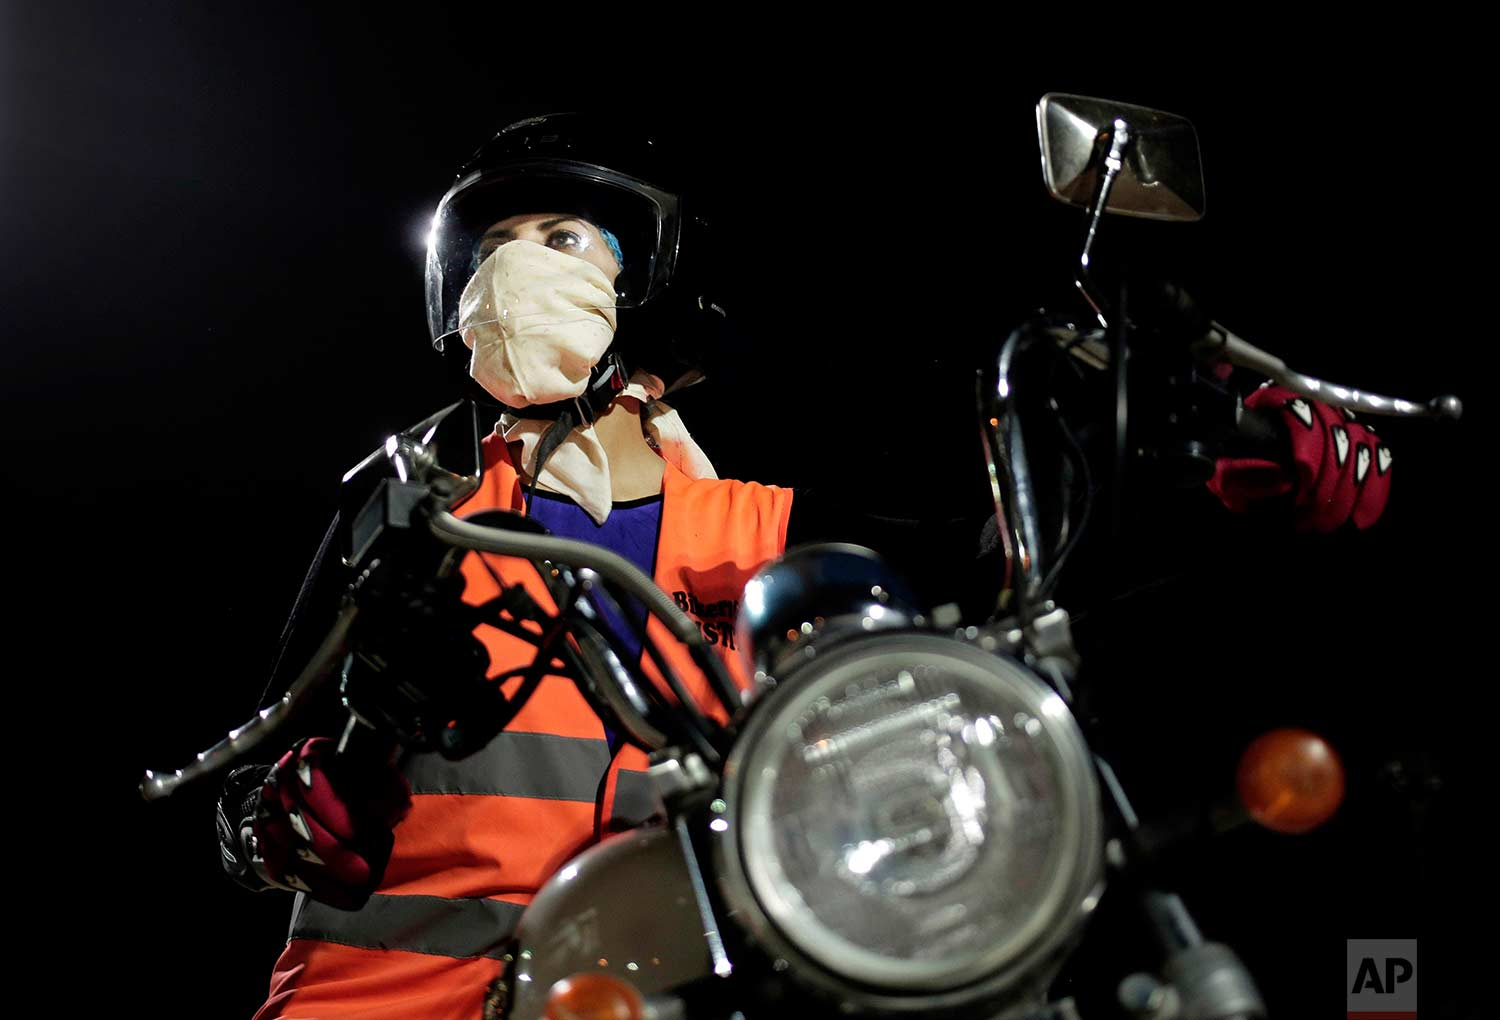 In this June 23, 2018 photo, Maha Mohammed poses for a photograph, on a motorbike as she learns how to ride, at the Bikers Skills Institute, in Riyadh, Saudi Arabia. (AP Photo/Nariman El-Mofty)